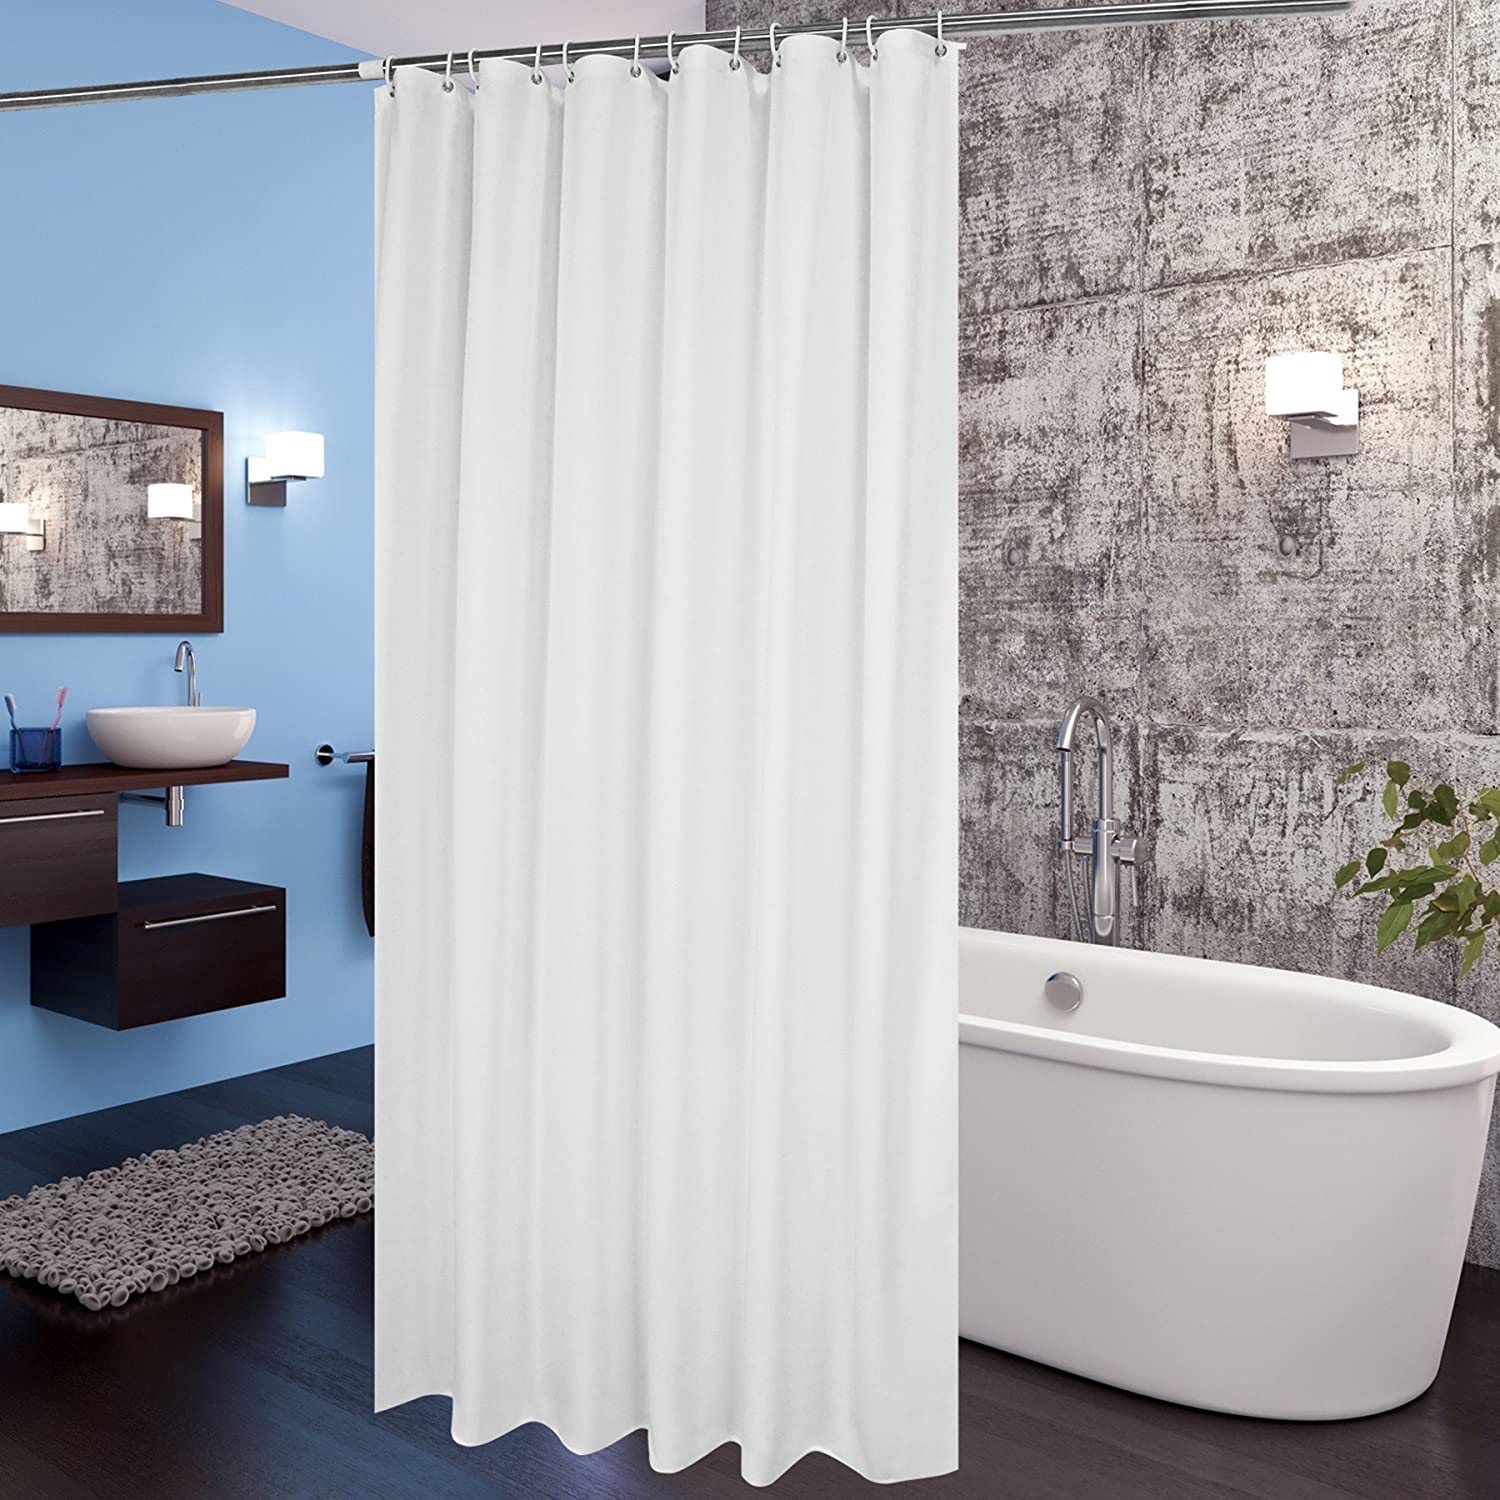 Details About White Fabric Shower Curtain Liner 72x78 Extra Long W Hooks Mildew Resistant